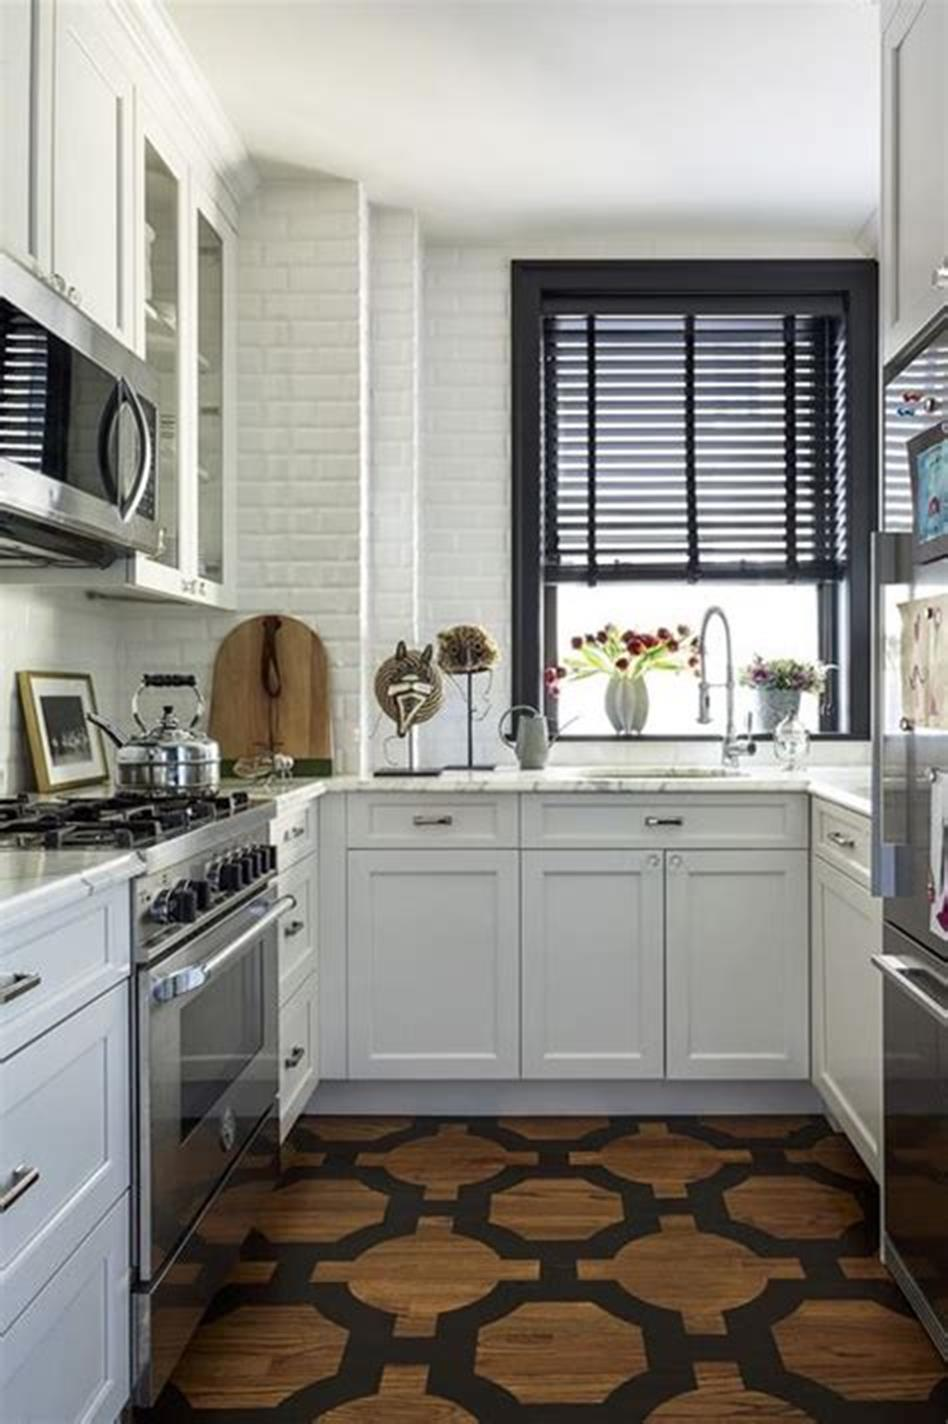 43 Amazing Kitchen Remodeling Ideas for Small Kitchens 2019 32